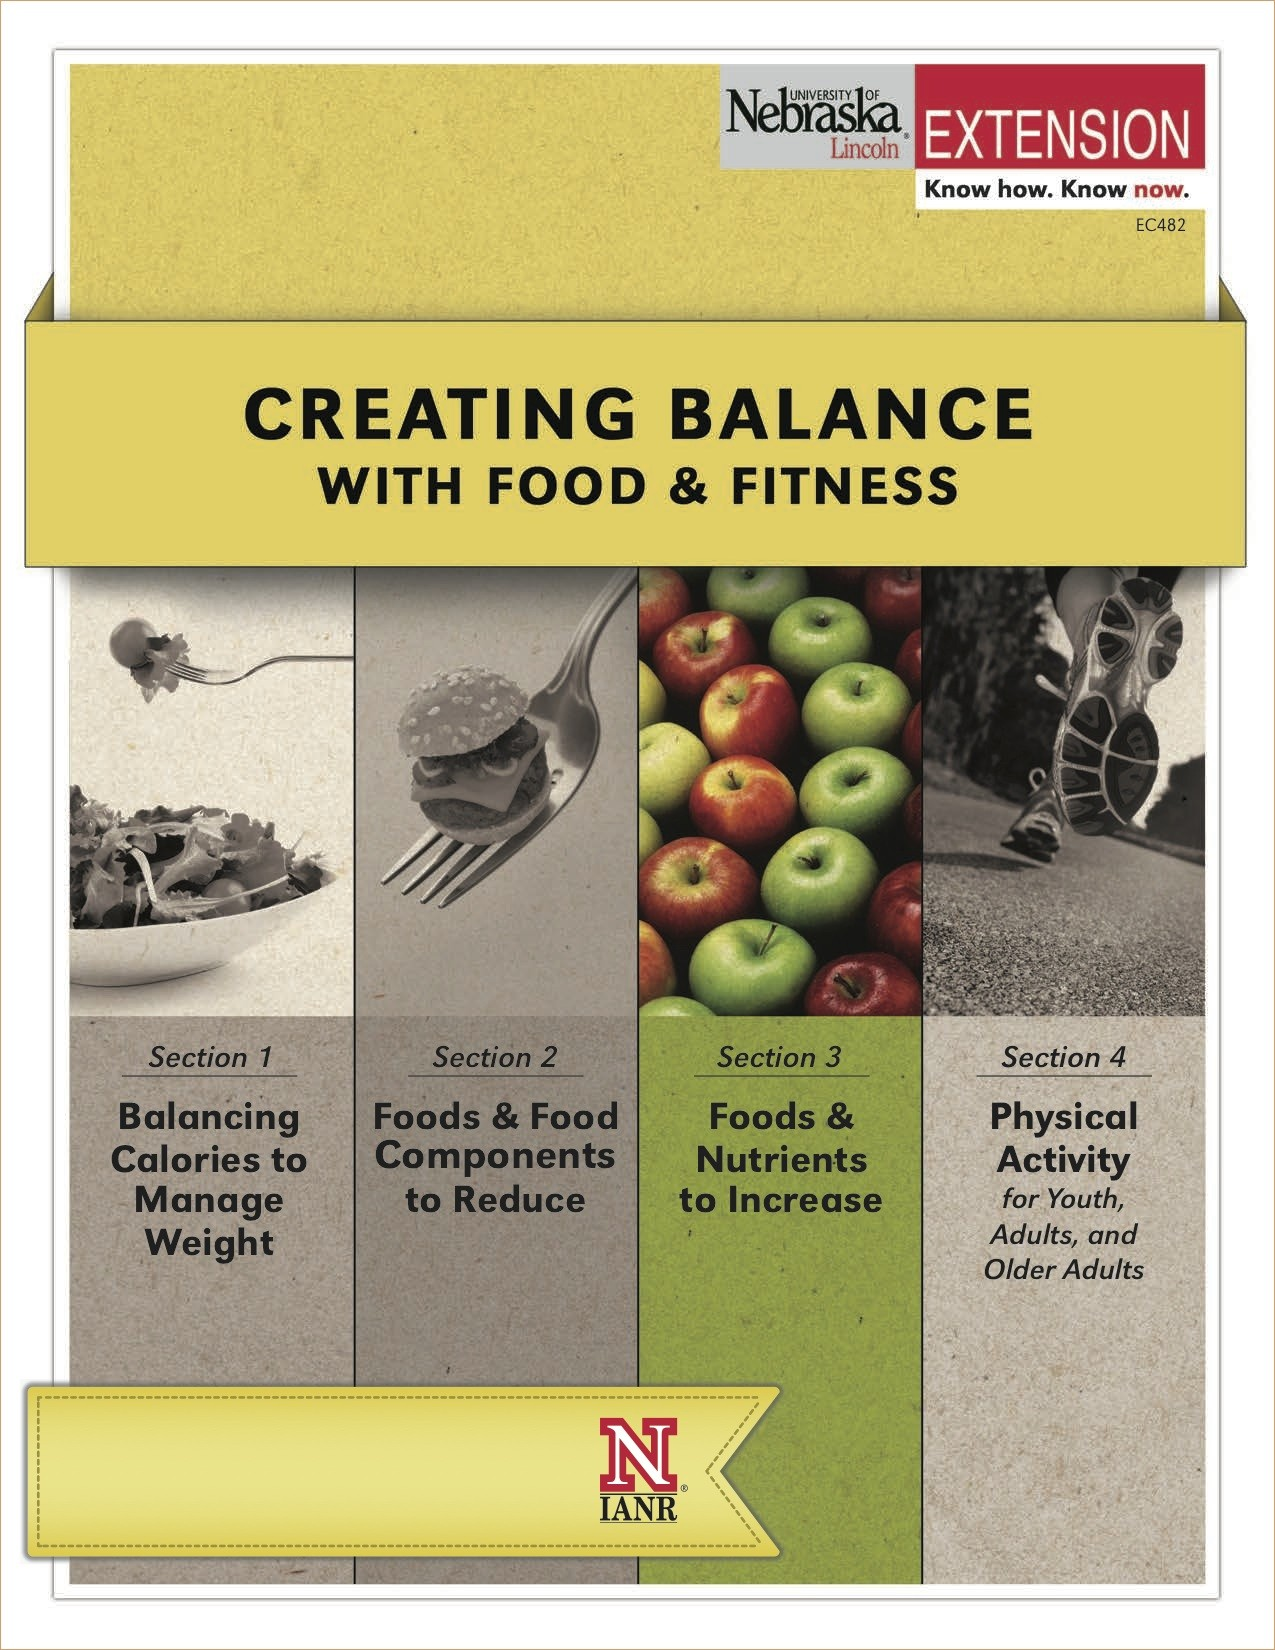 Creating Balance - Section 3